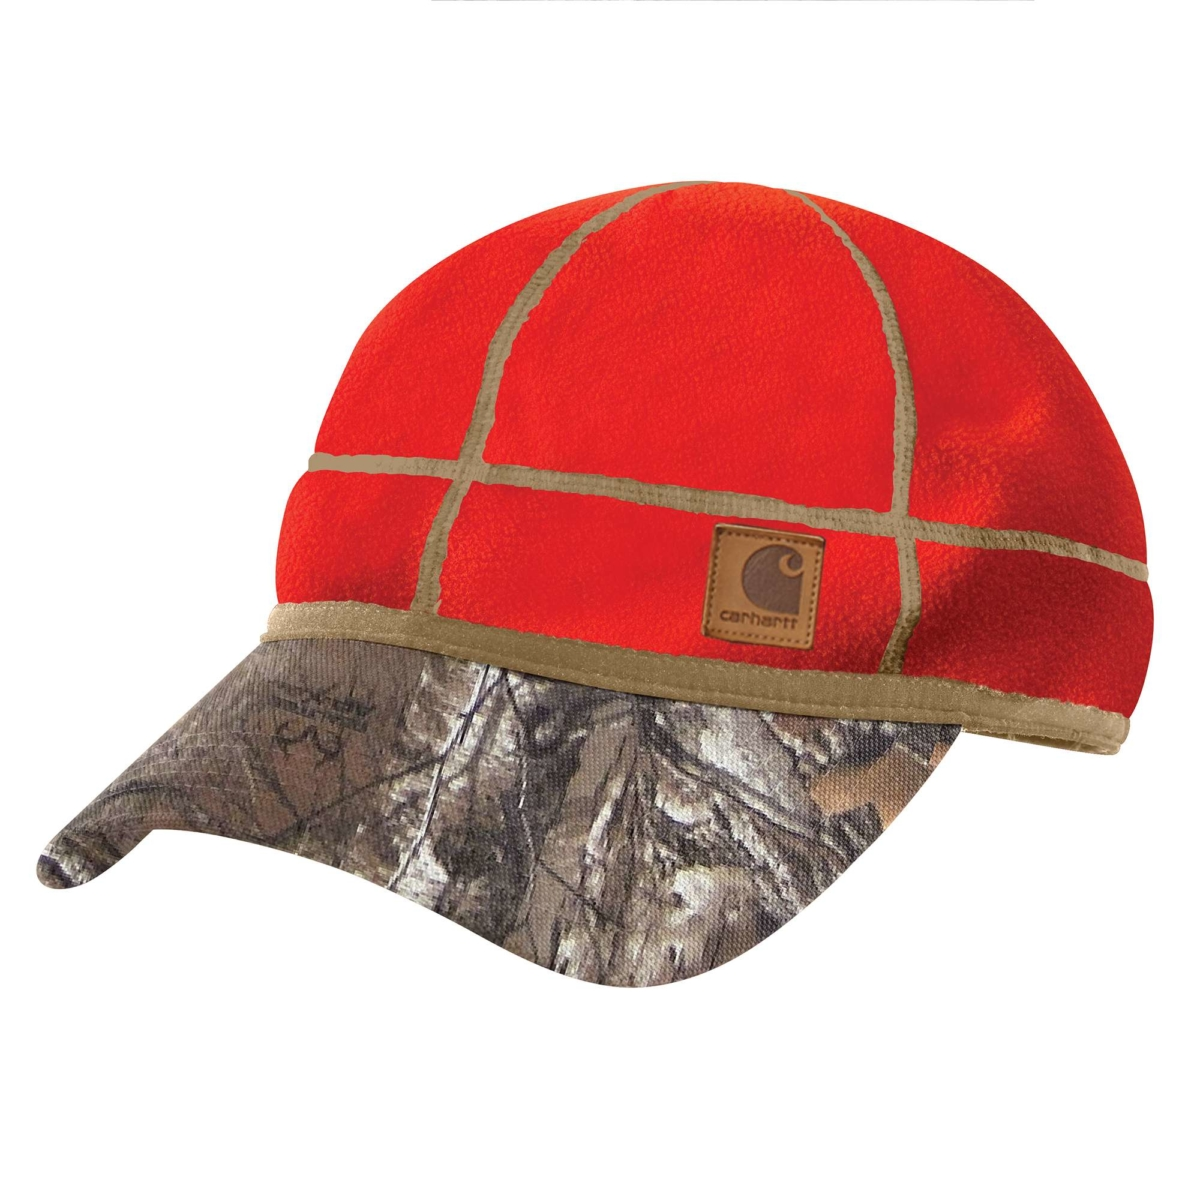 Carhartt Carhartt Force Griggs Fleece Visor Cap Orange USA - GOOFASH - Mens CAPS